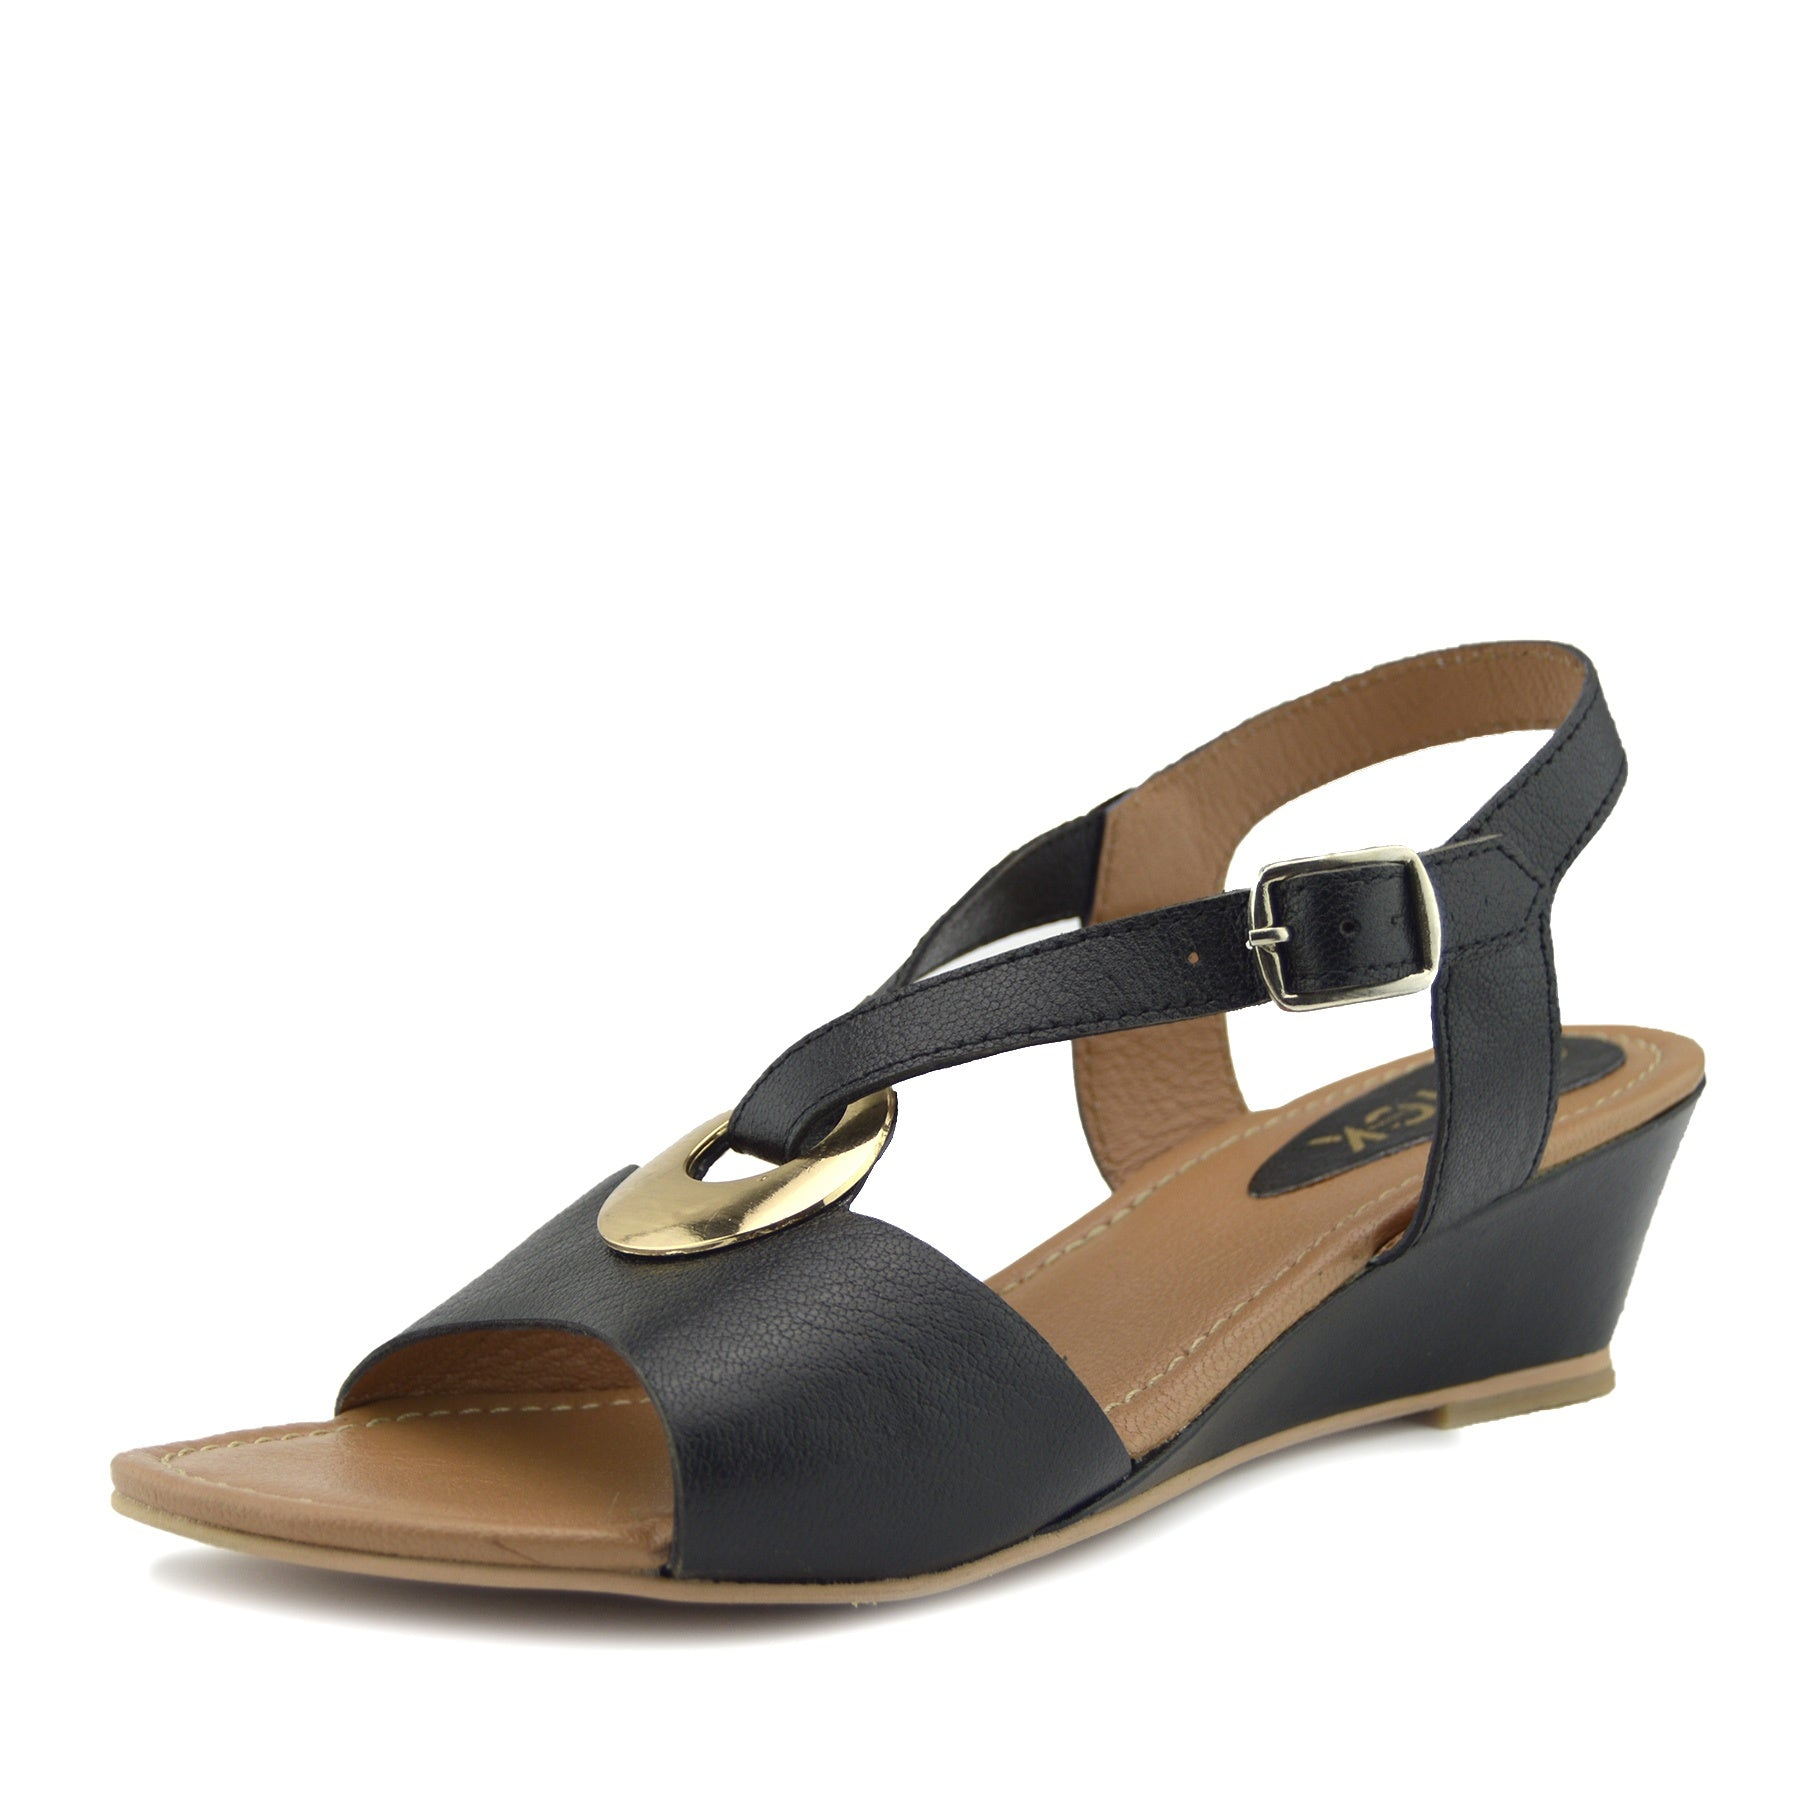 Comfort Wedge Leather Summer Black Sandals Heel Women's Low Holiday Shoes Mid IDeH2YWE9b